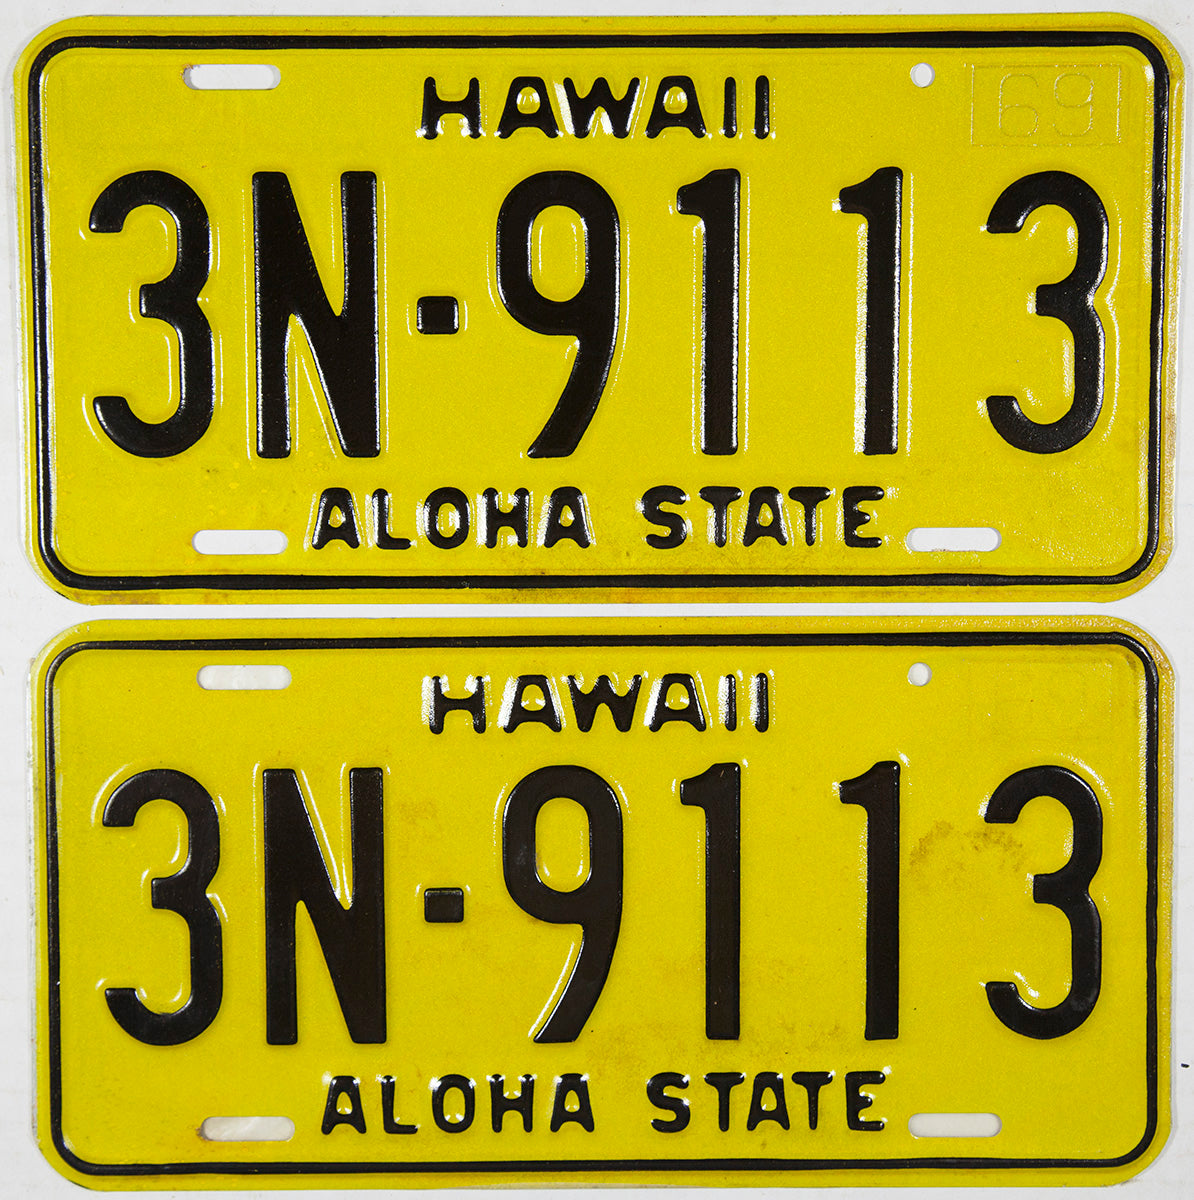 A pair of NOS 1969 Hawaii passenger car license plates